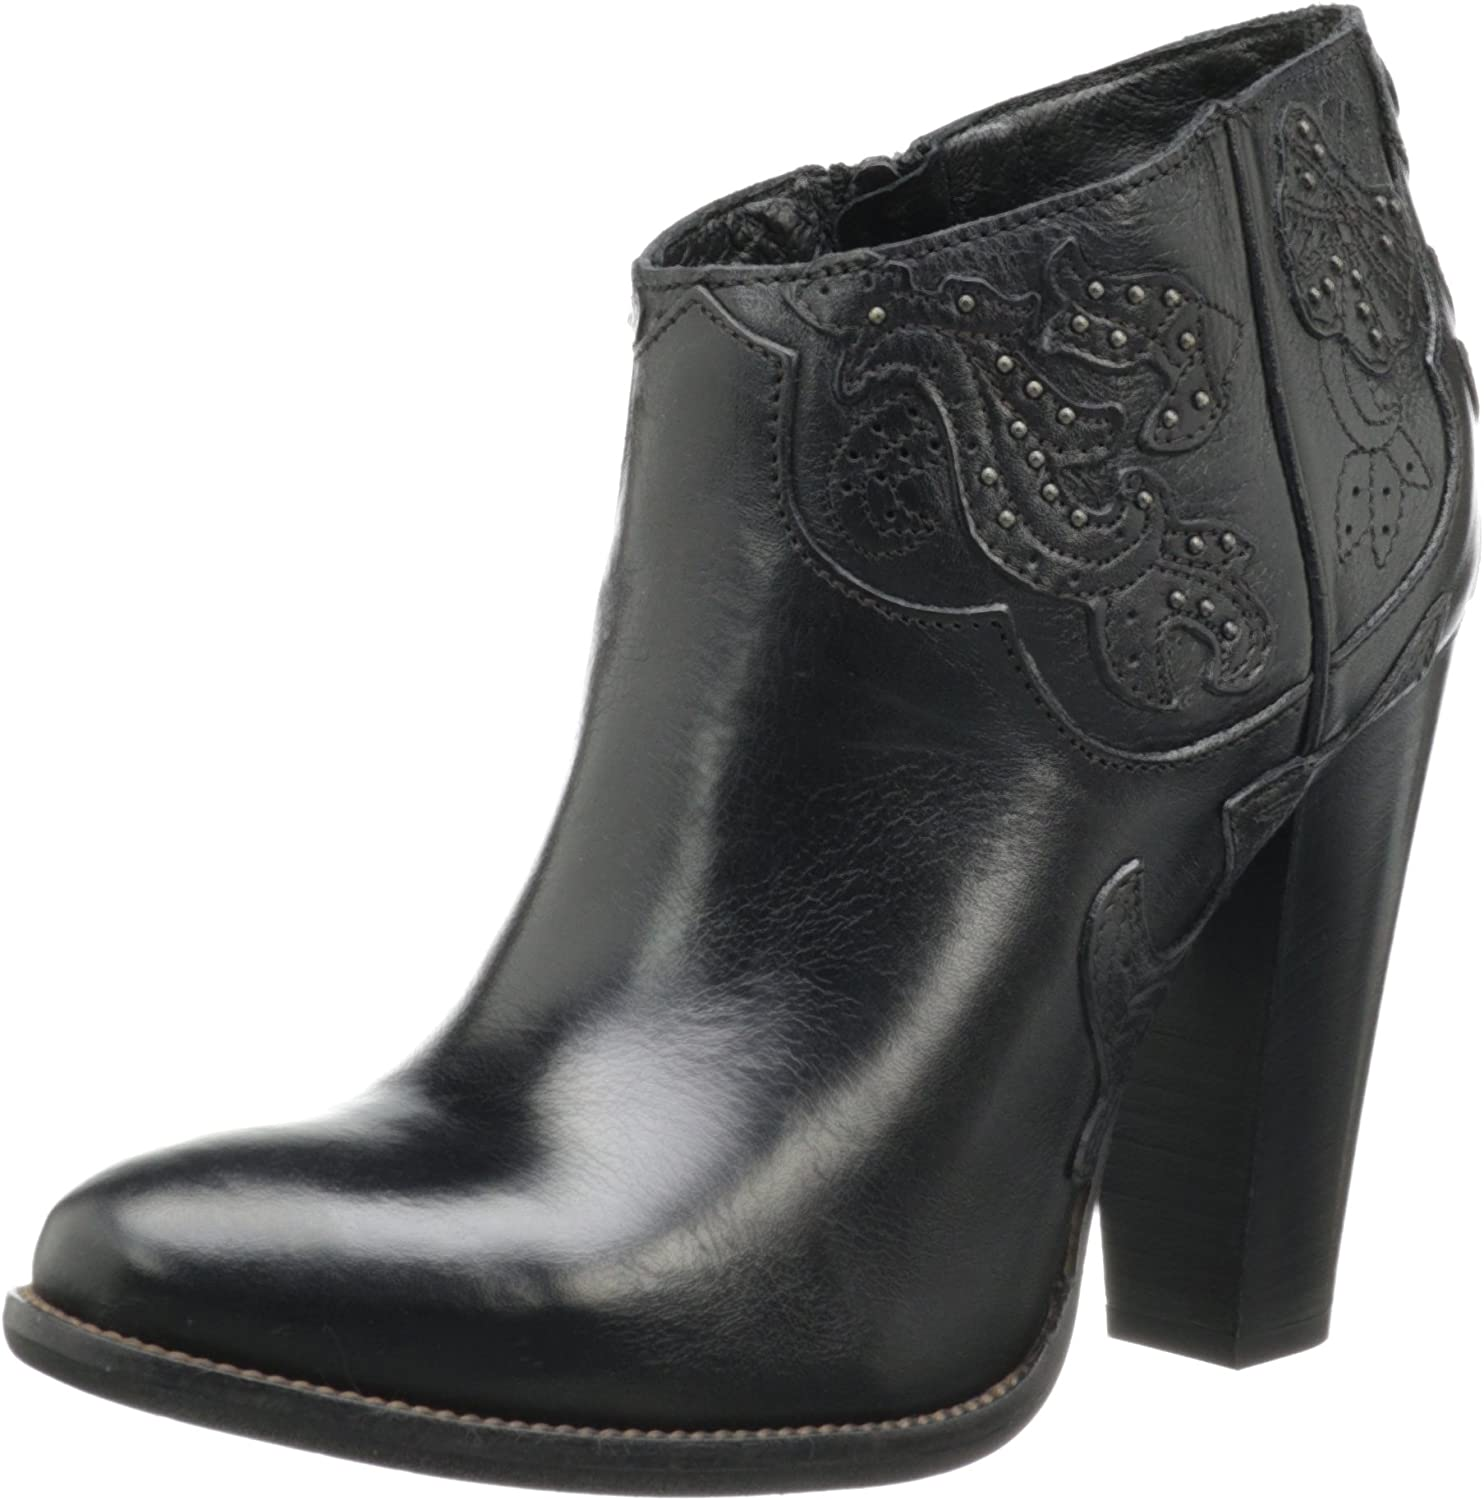 67% OFF of fixed price Diesel Women's Girl On 5 popular Guadalupy Boot Tex